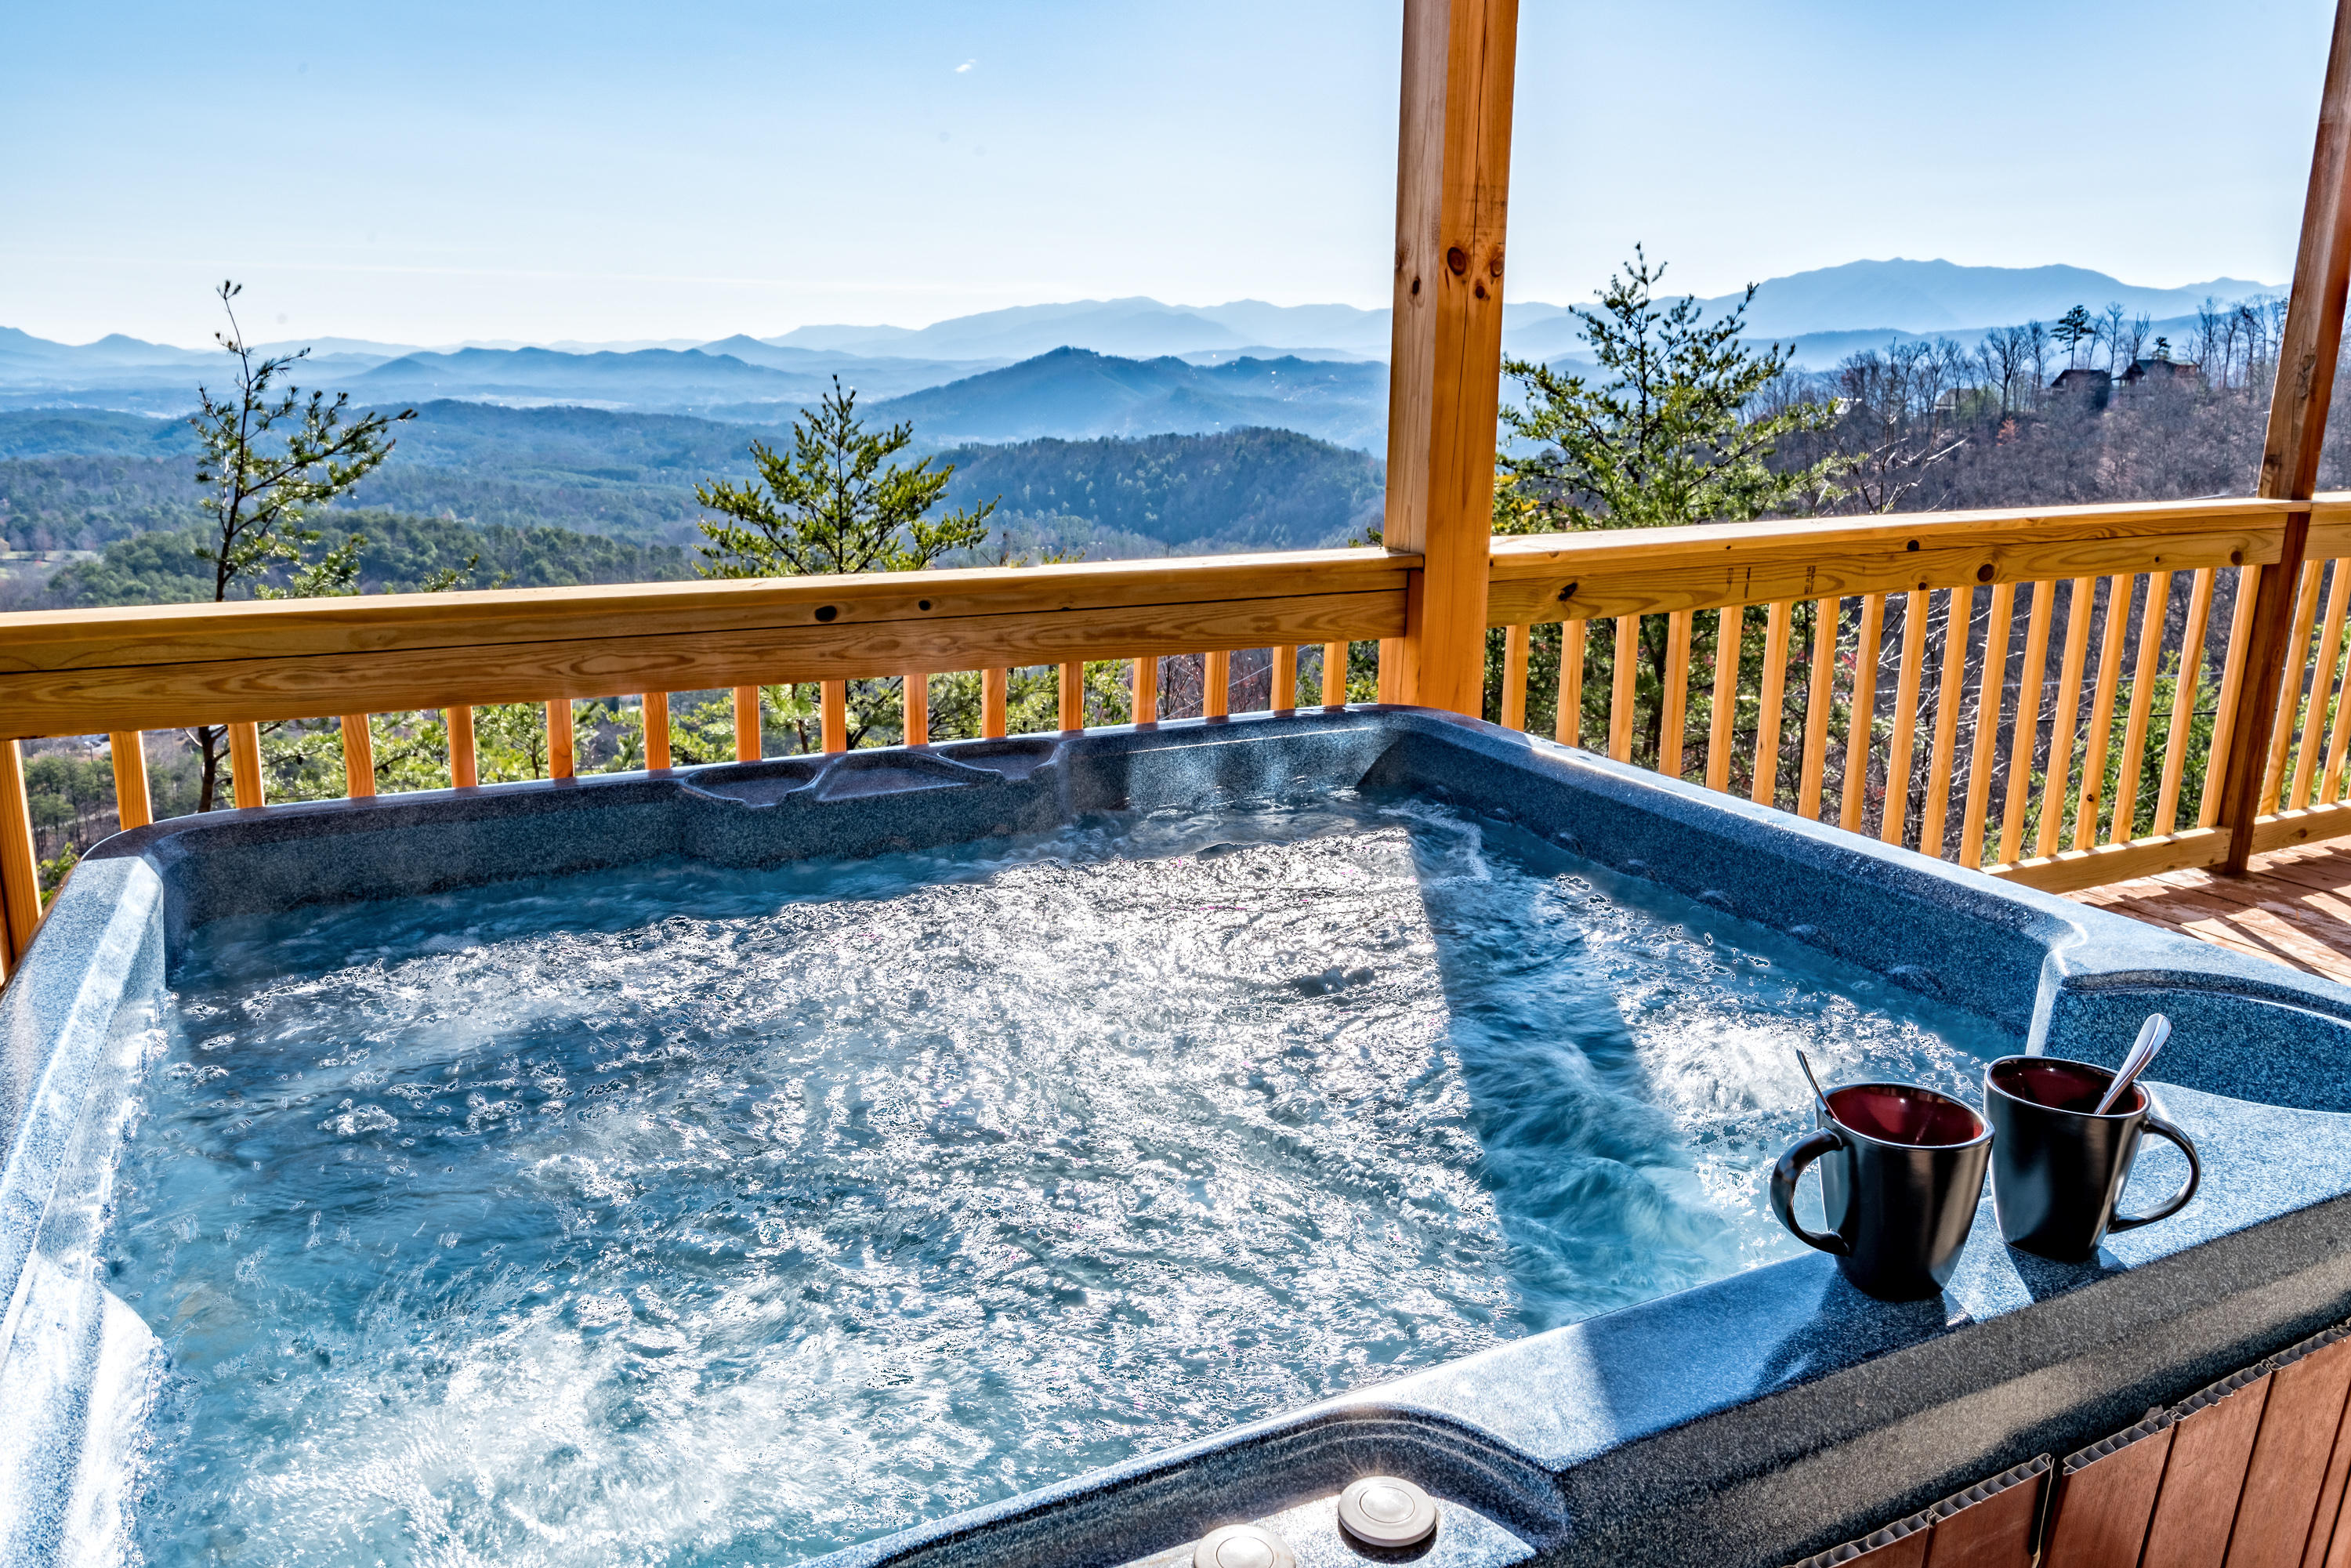 cabin rentals welcome and tuckaleechee pool center gatlinburg cabins with christian min to retreat mountain smoky